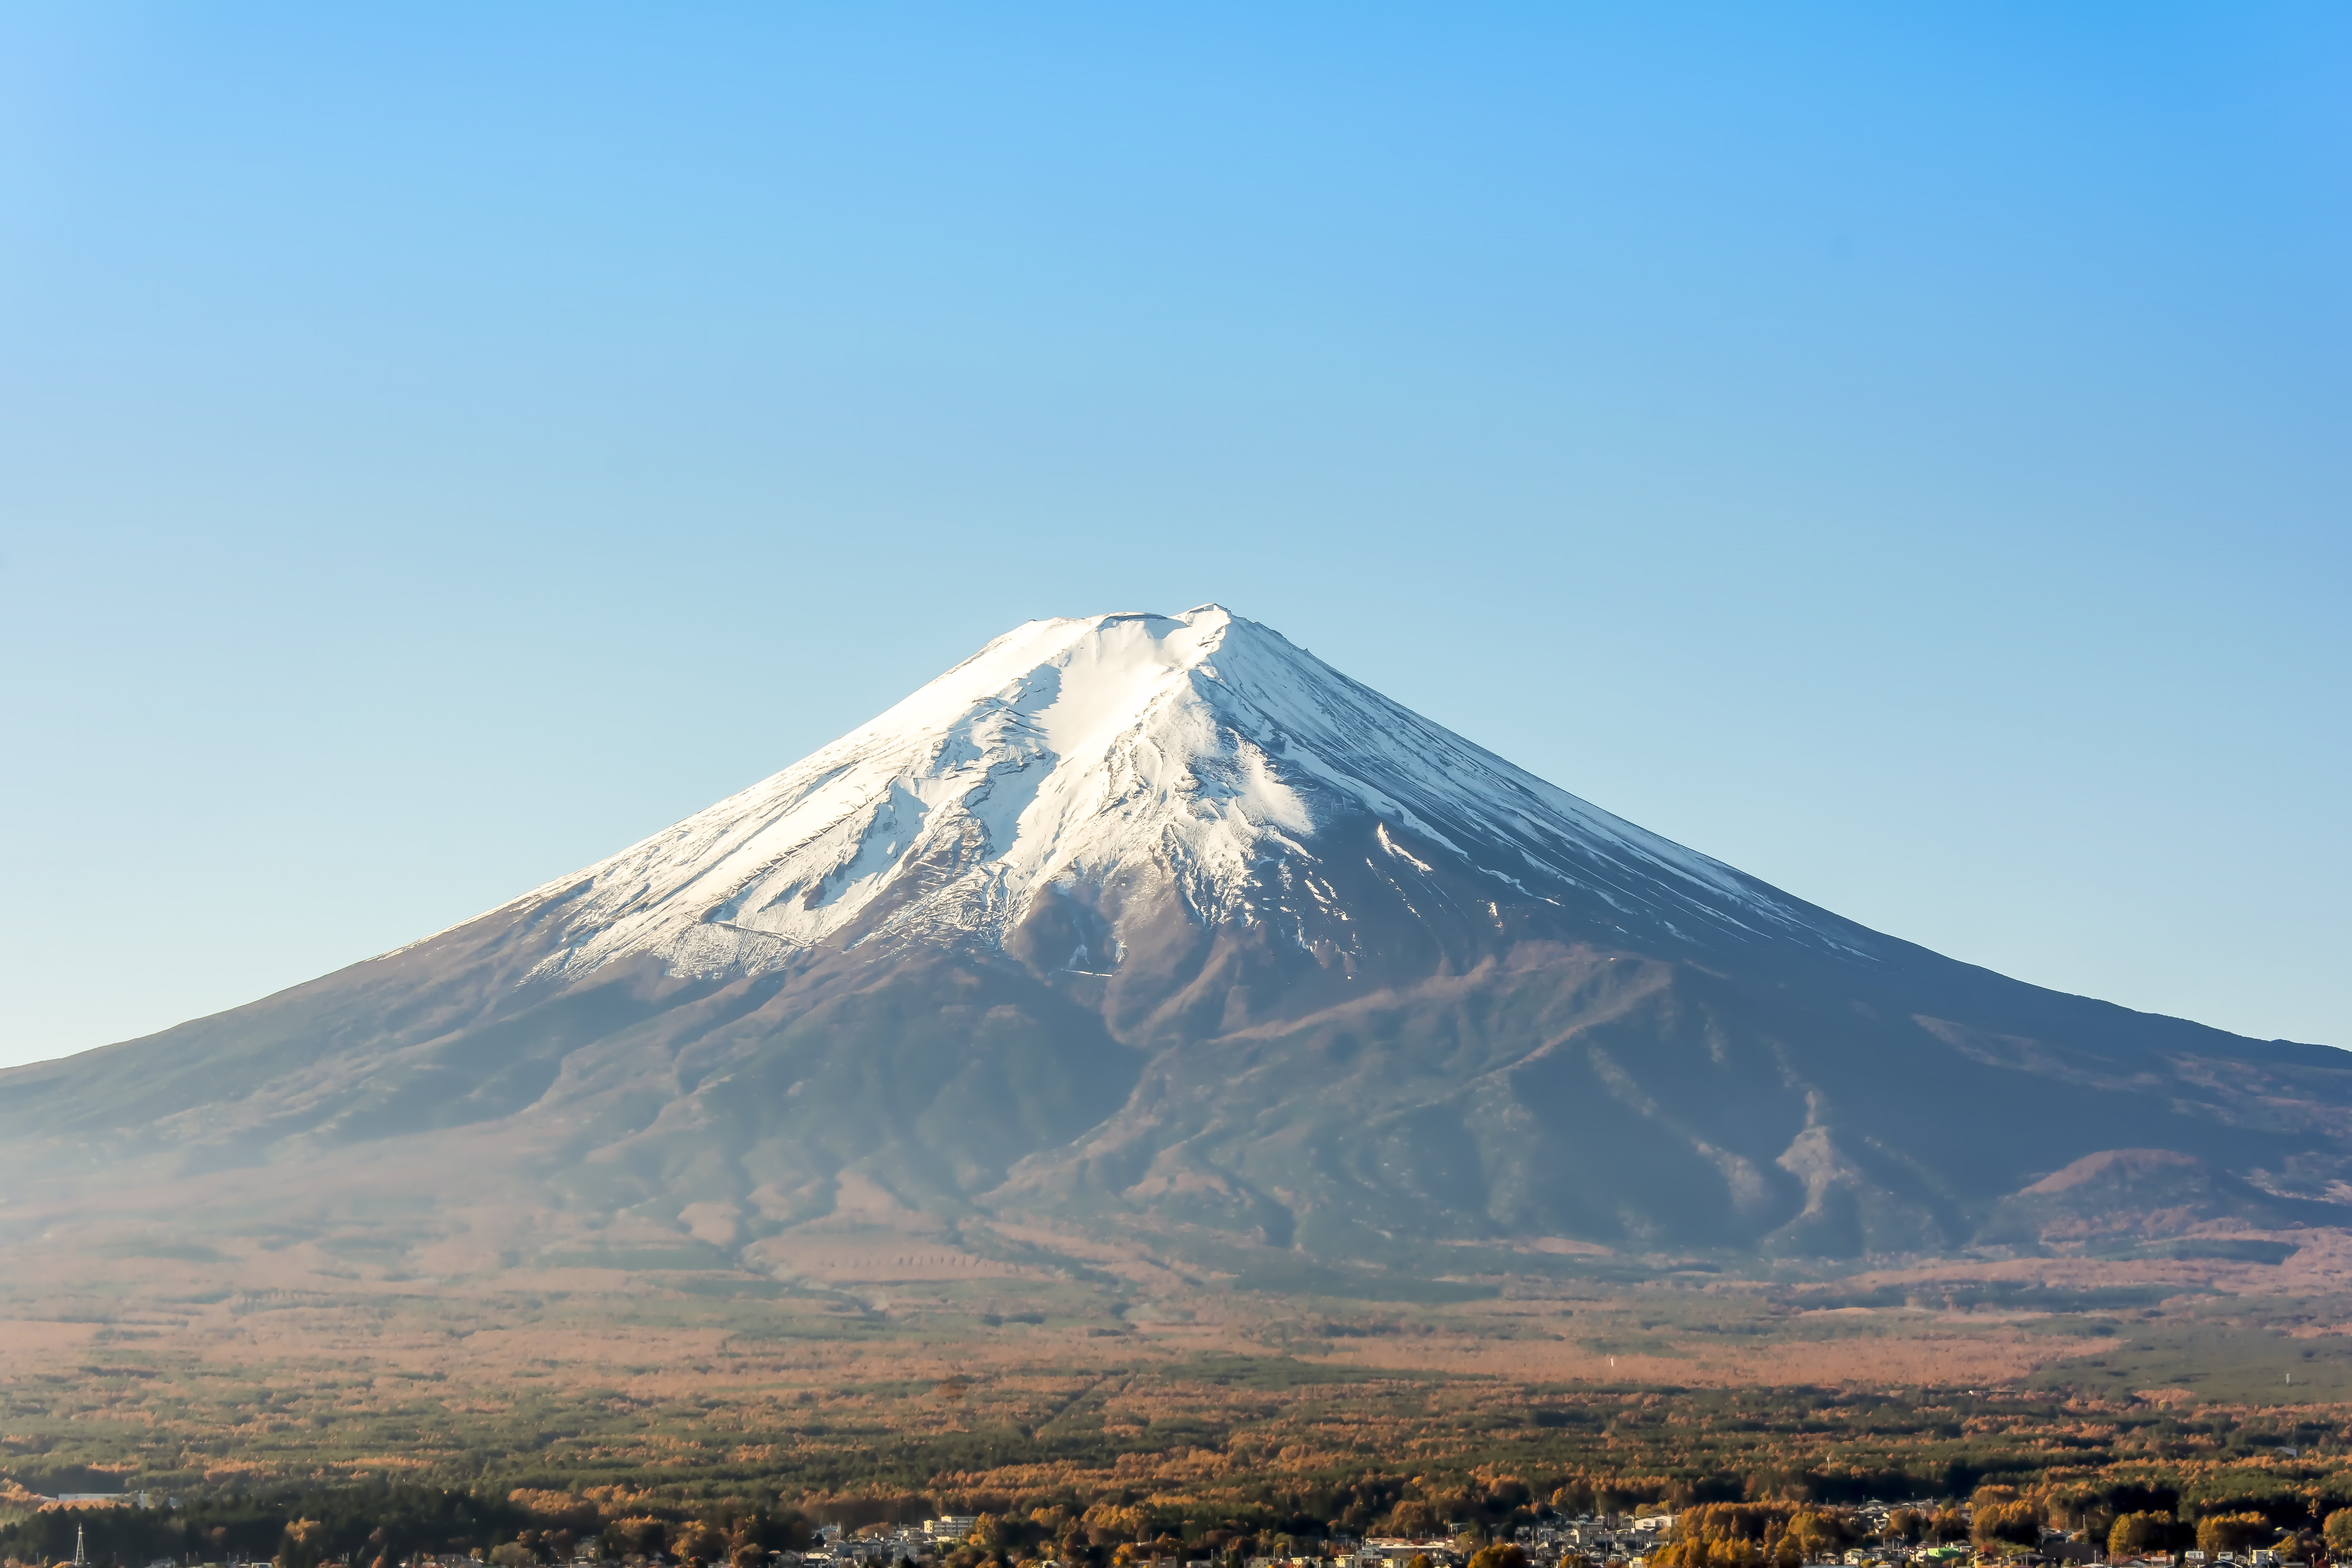 Japan's Mt. Fuji is an active volcano about 100 kilometres southwest of Tokyo.